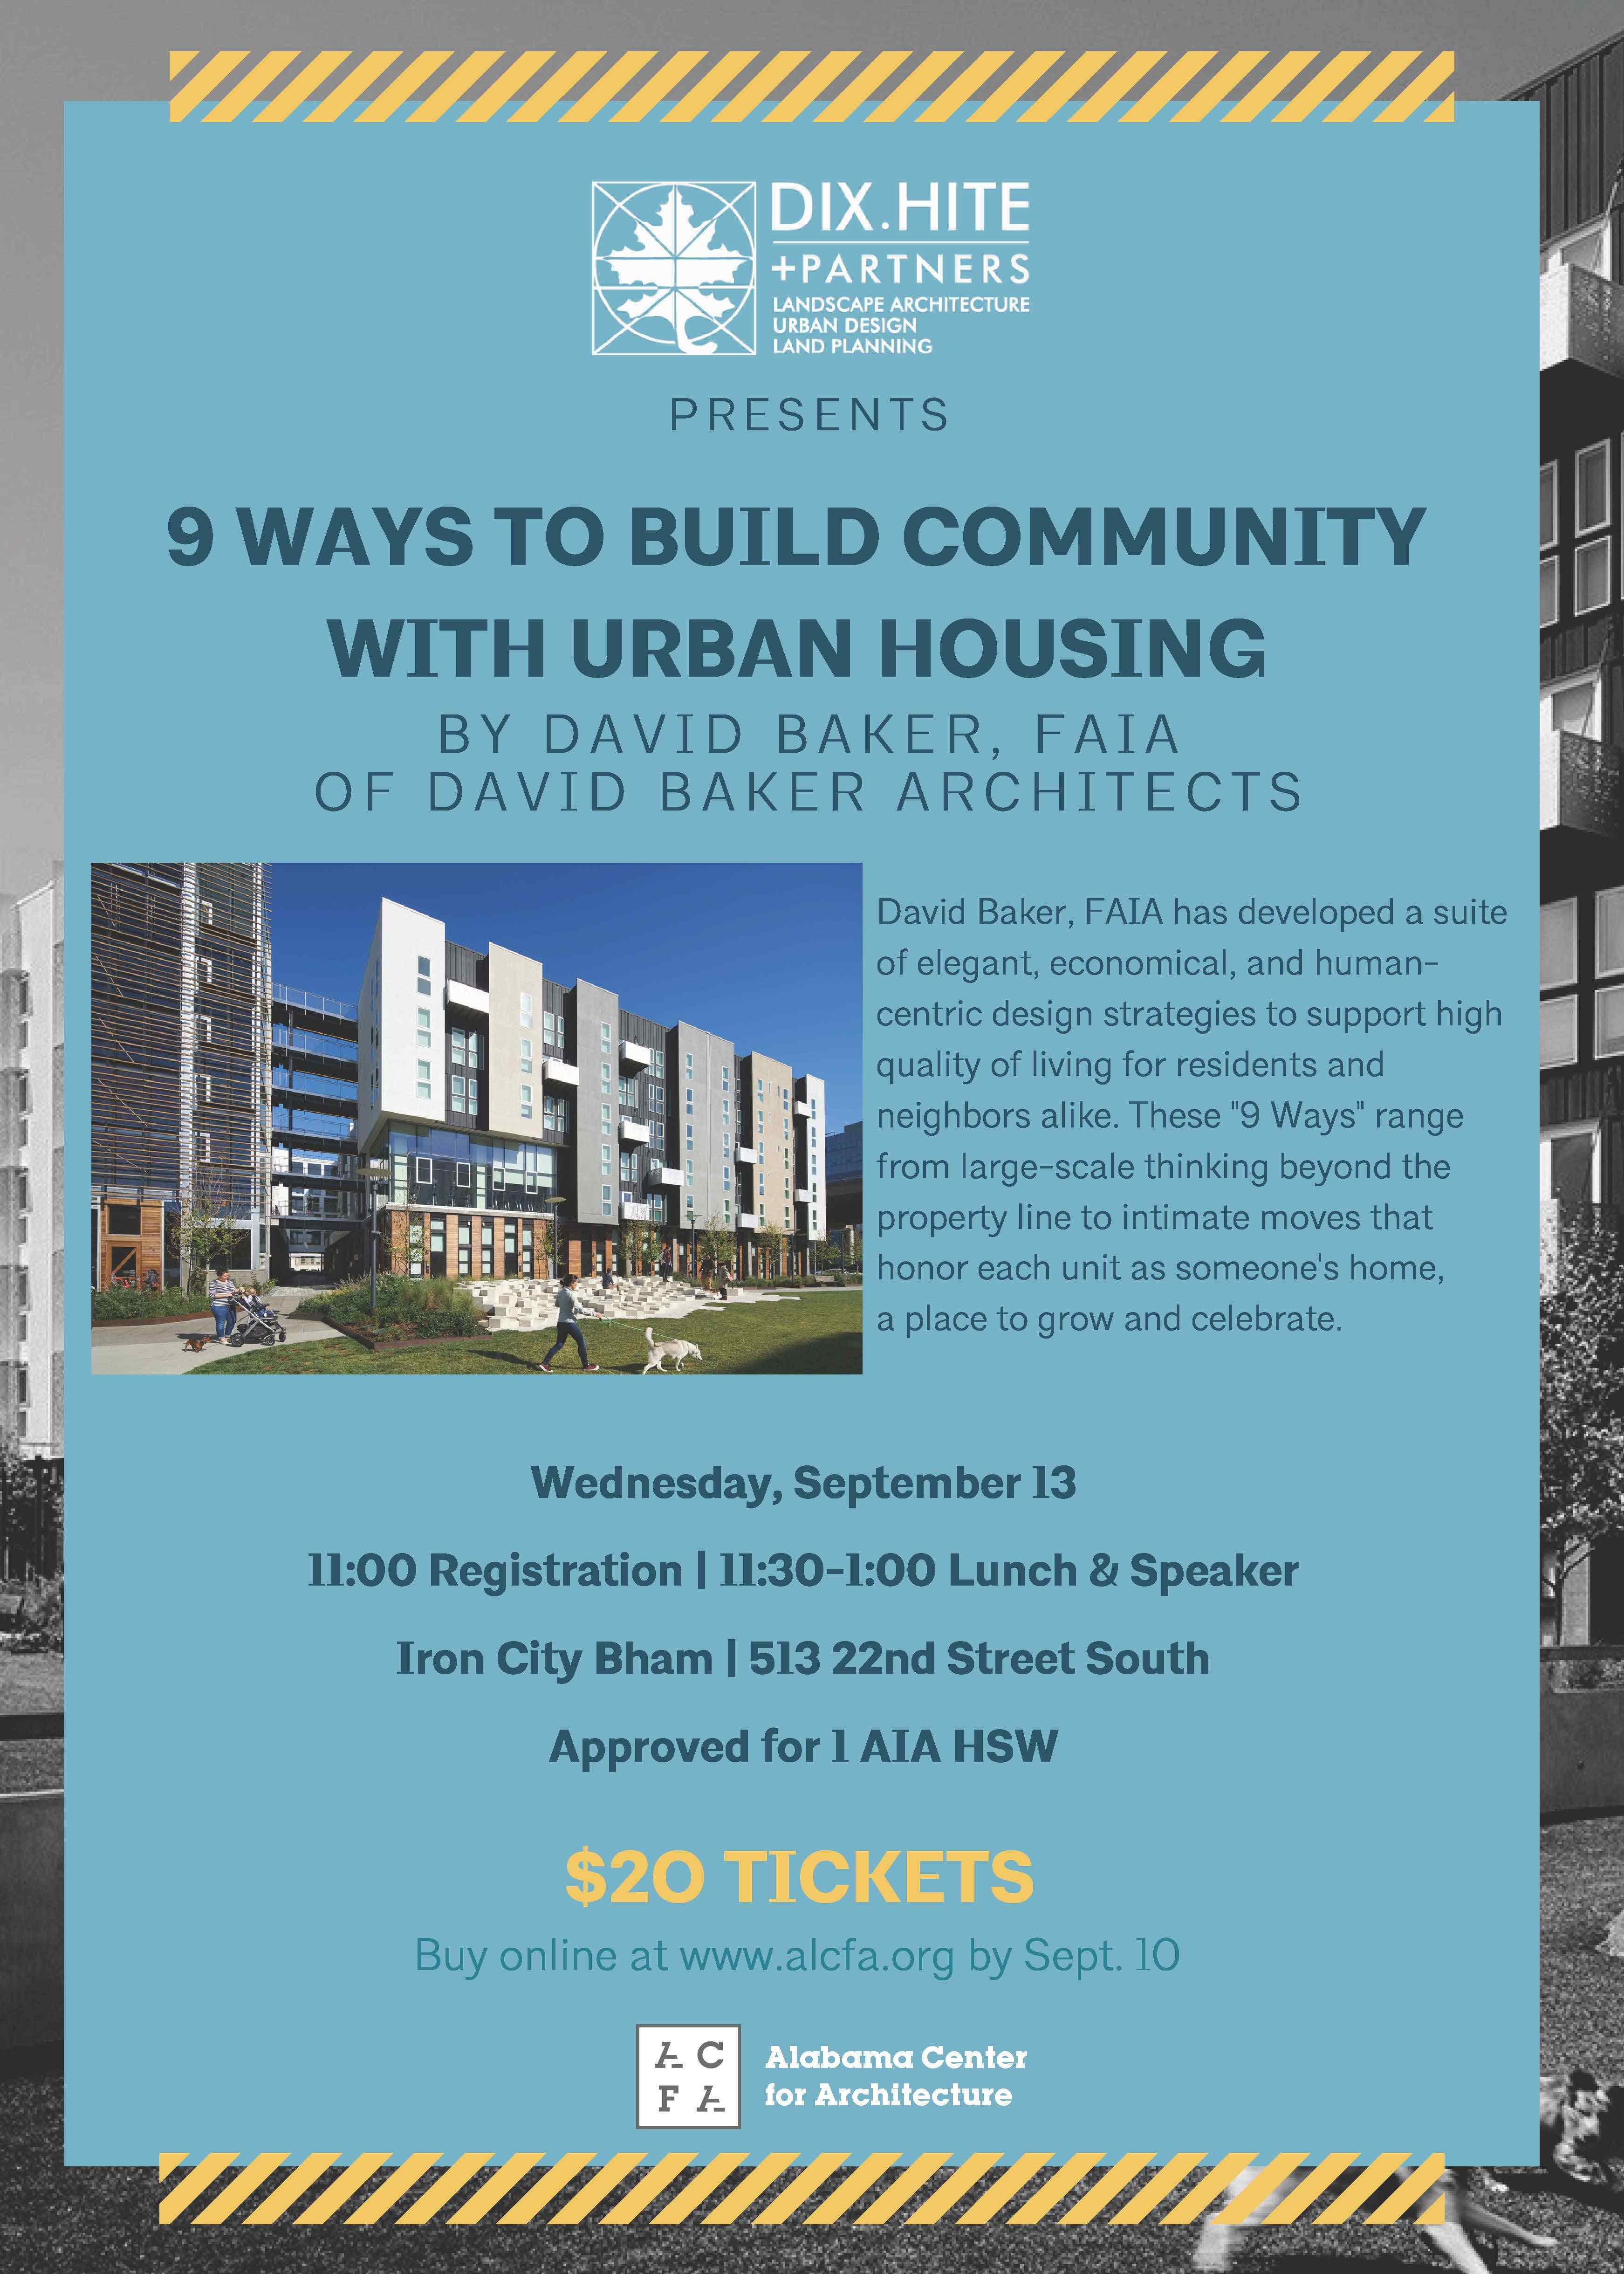 Lecture Series 9 Ways to Build Community